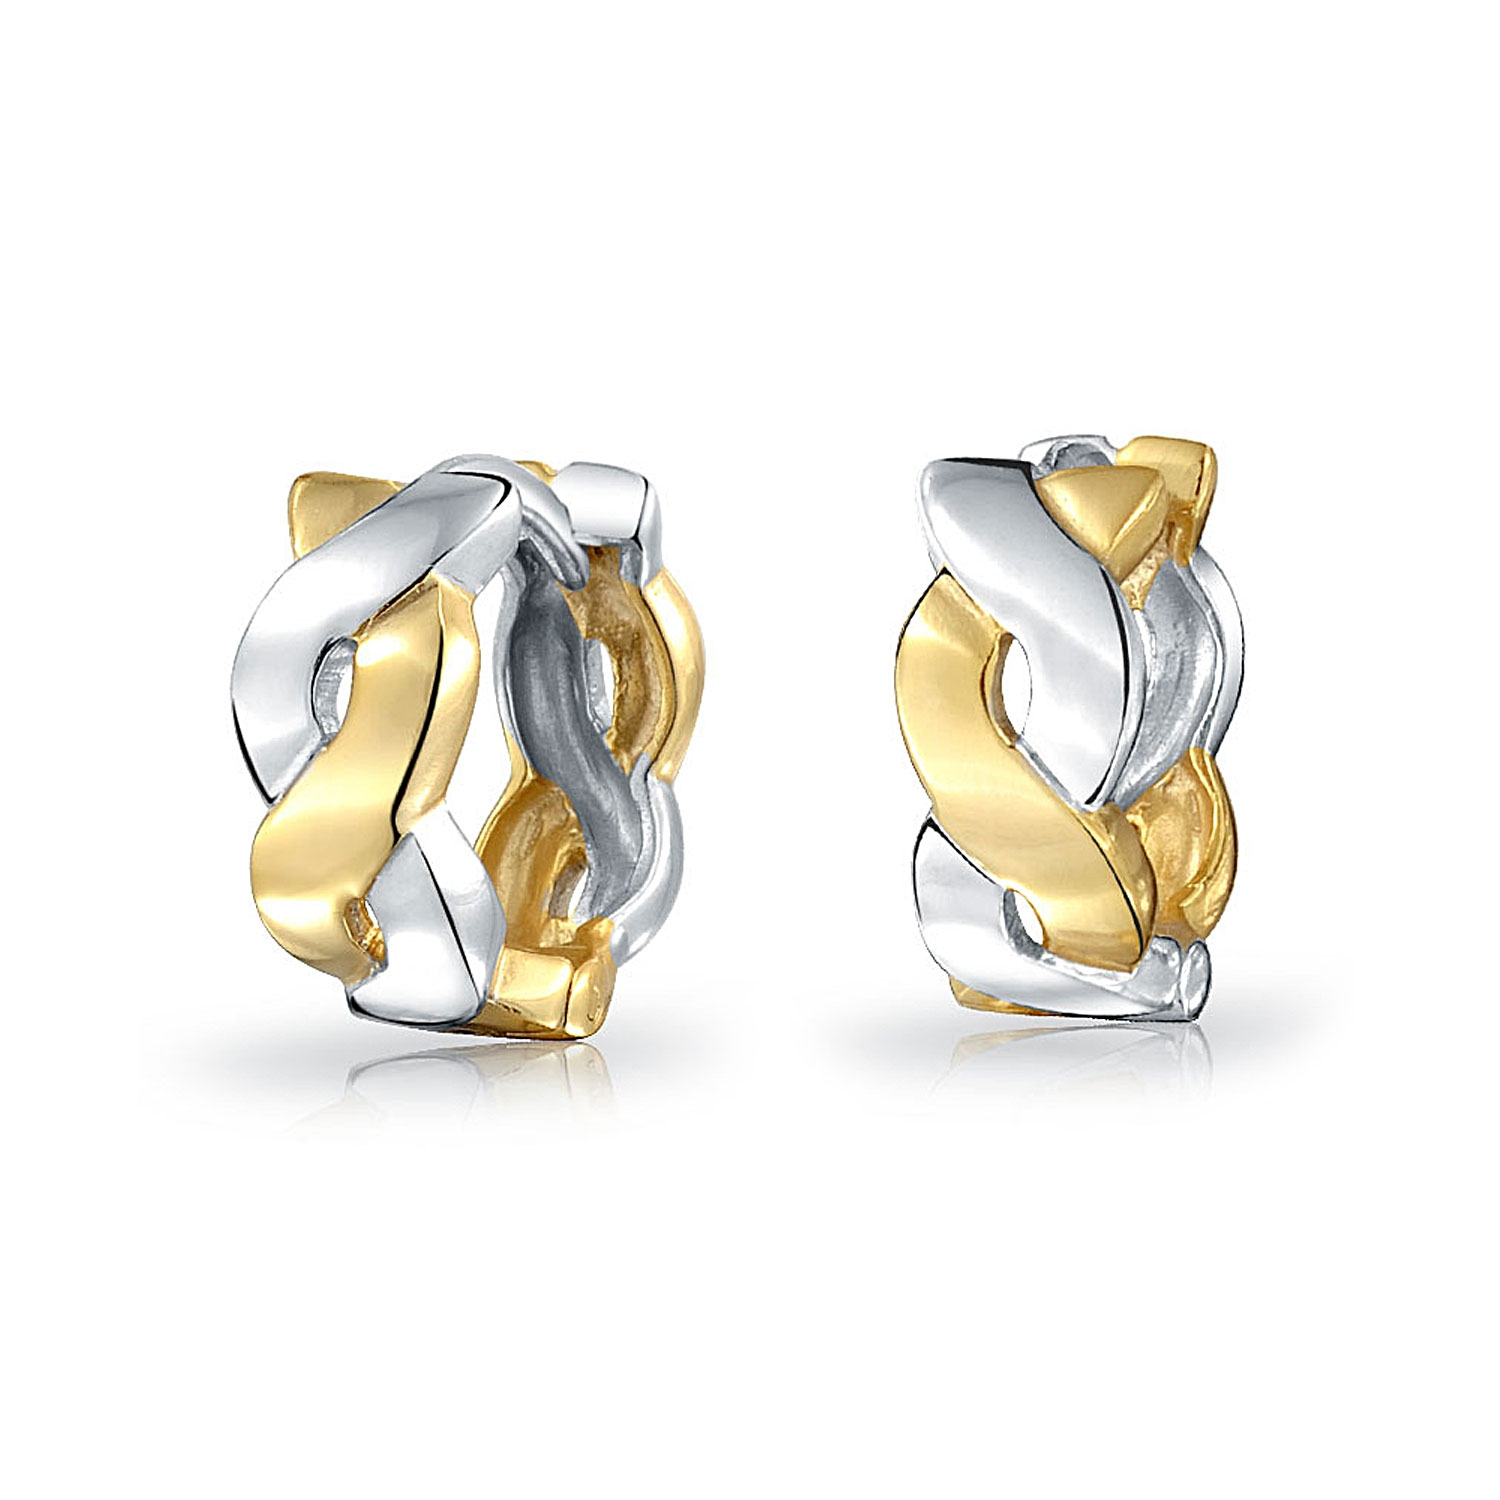 925 Sterling Silver Gold-tone Polished Twisted Hoop Earrings